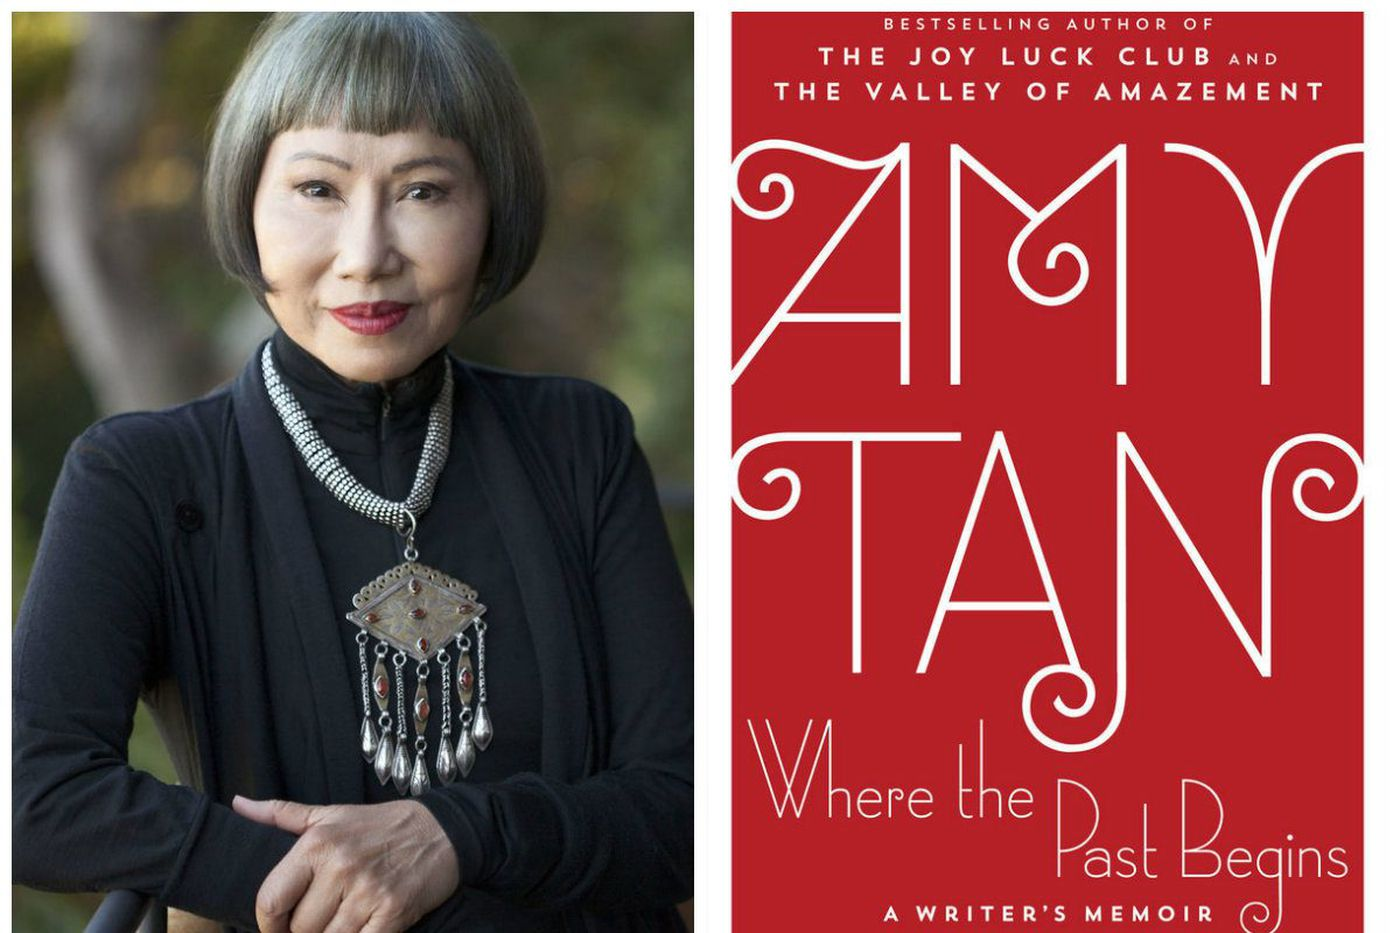 Amy Tan explores the dark side of her Joy Luck Club in new memoir 'Where the Past Begins'